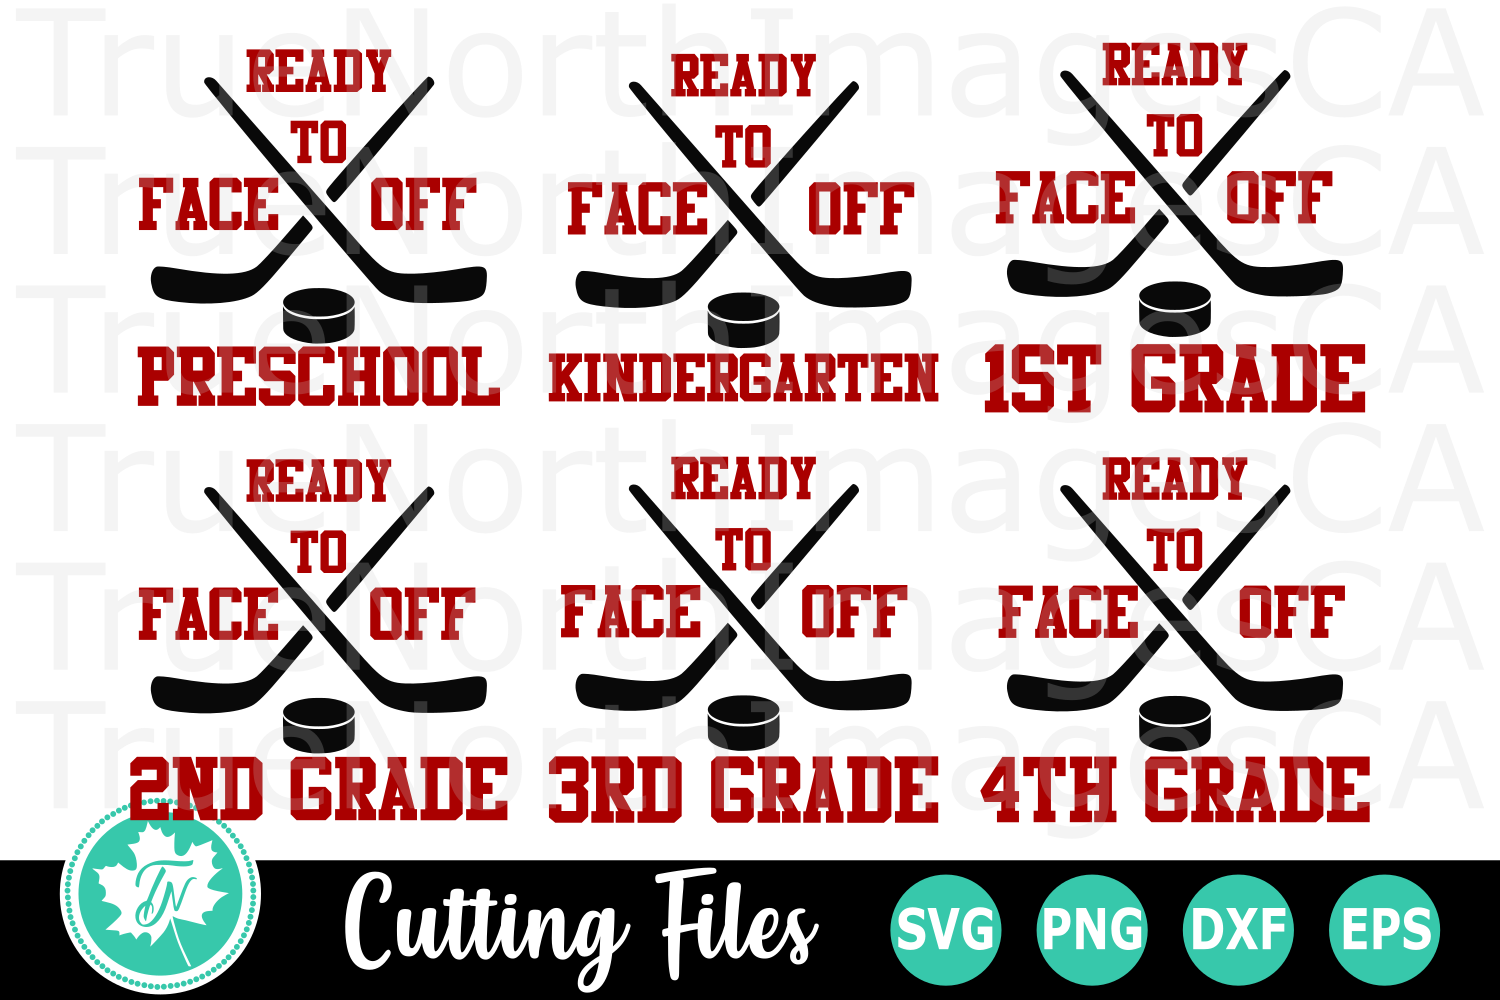 Ready to Face off School - A School SVG Cut File Bundle example image 1